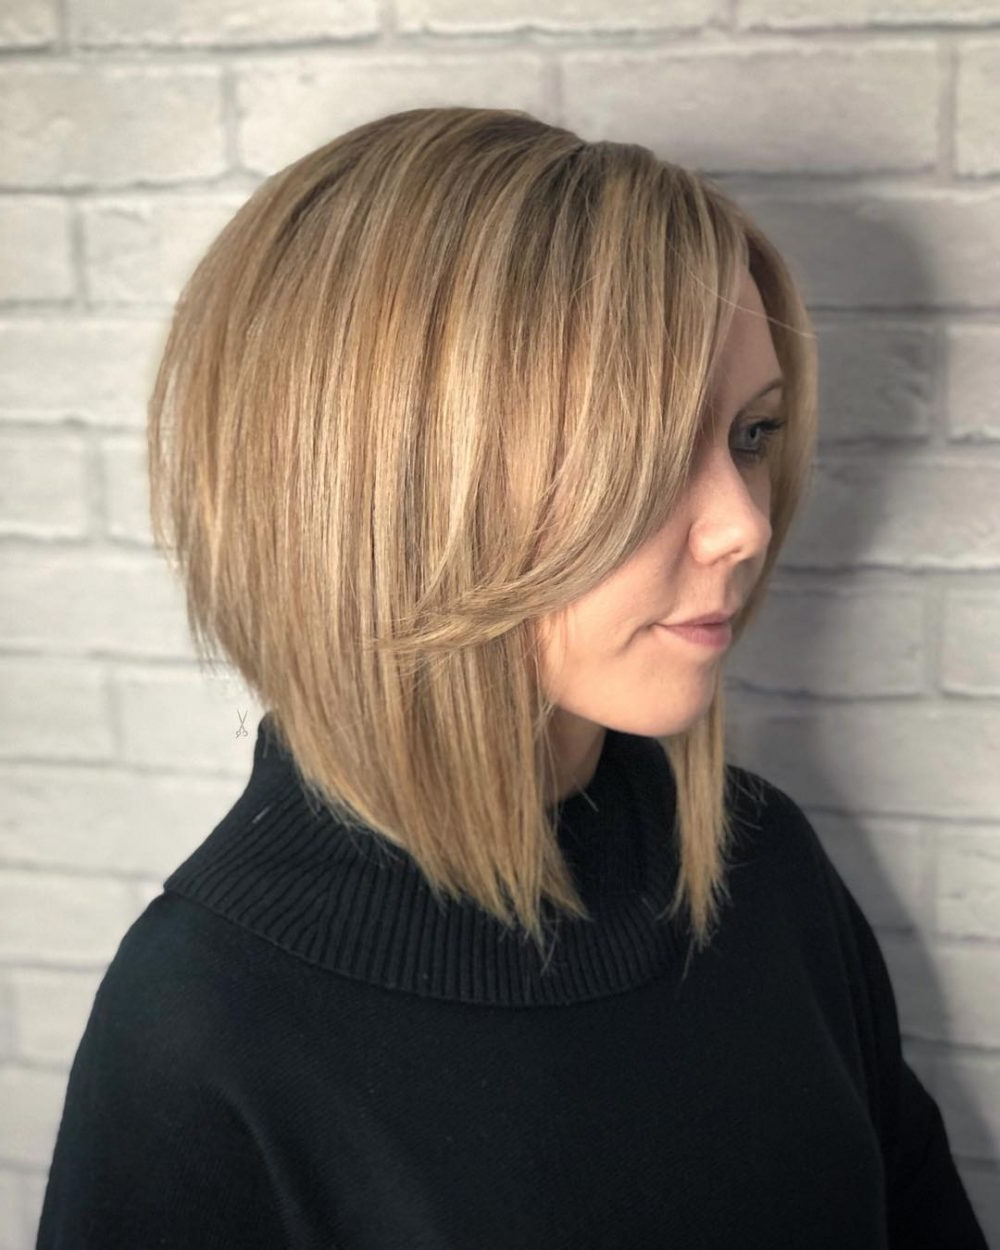 34 Greatest Short Haircuts And Hairstyles For Thick Hair For 2018 With Bob Hairstyles For Thick Hair (View 10 of 20)